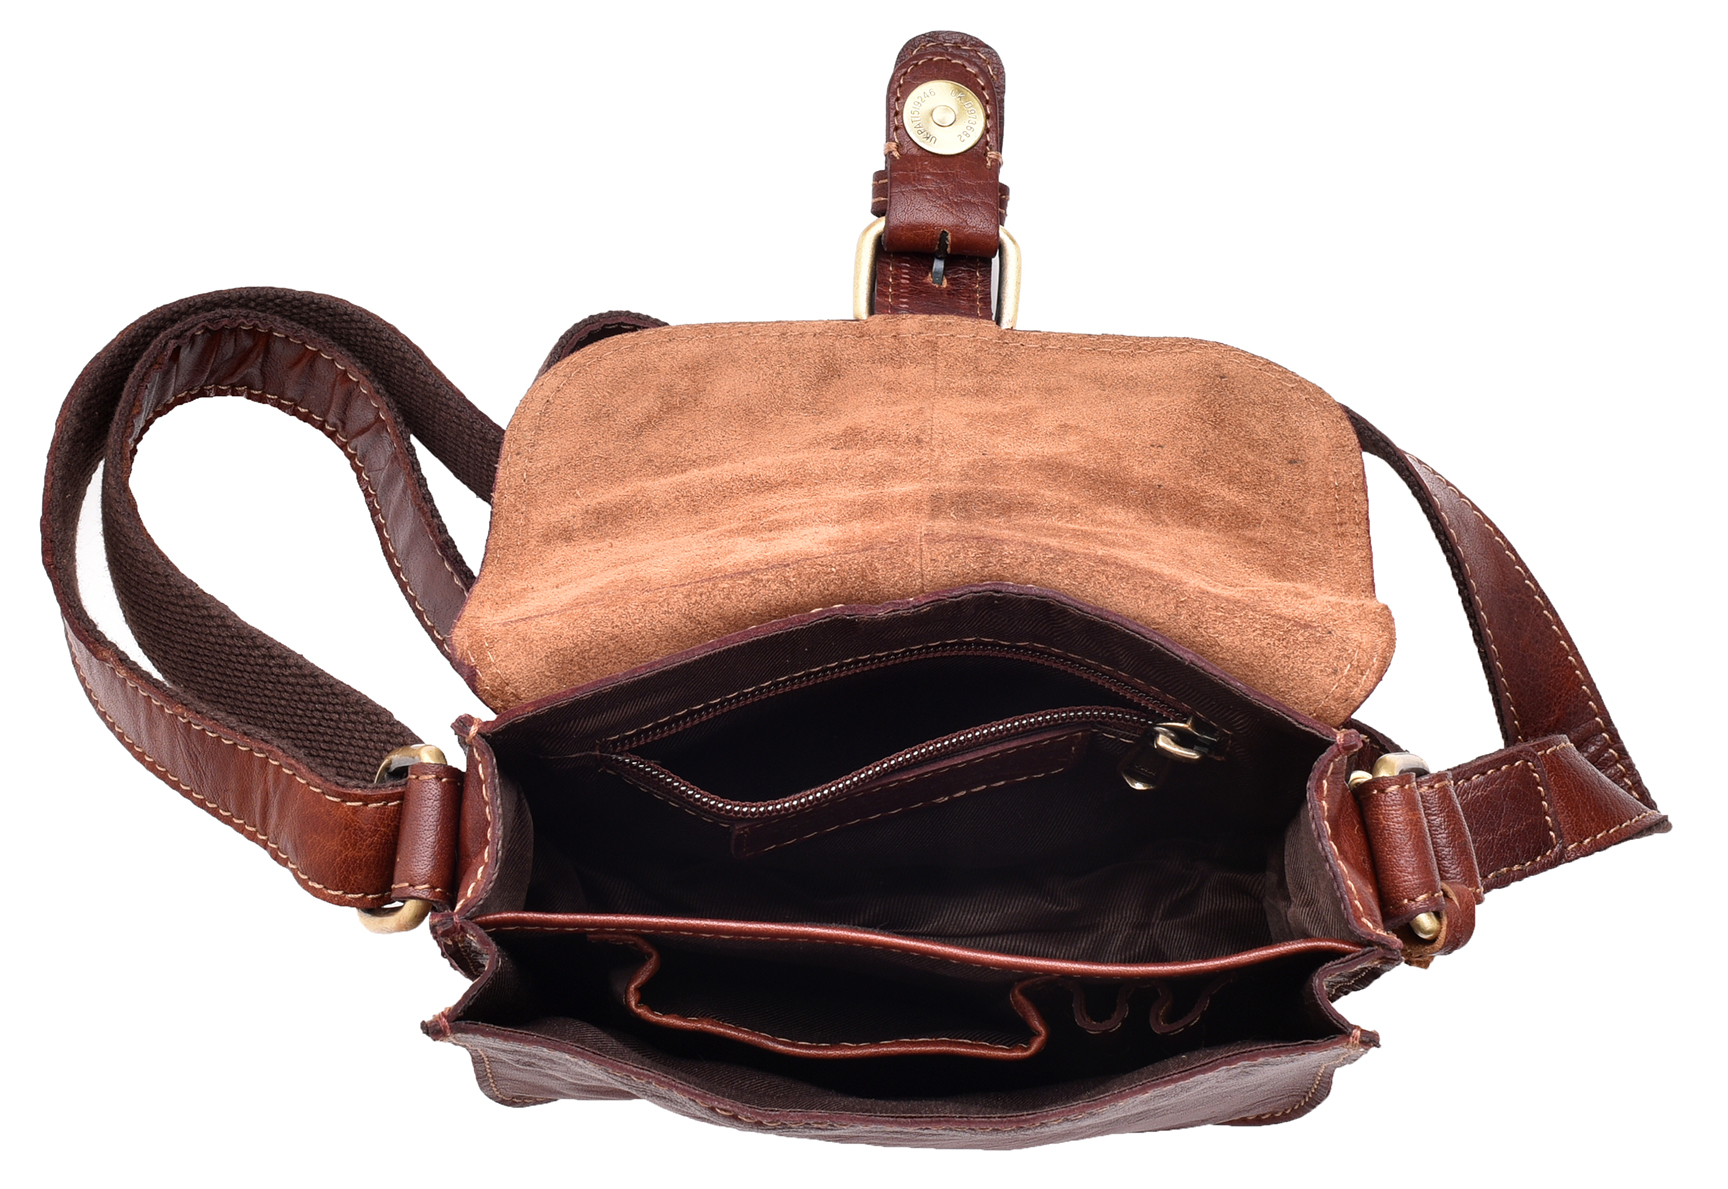 Ladies Womens Small Vintage Leather Hunter Style Shoulder Cross Body Bag Handbag